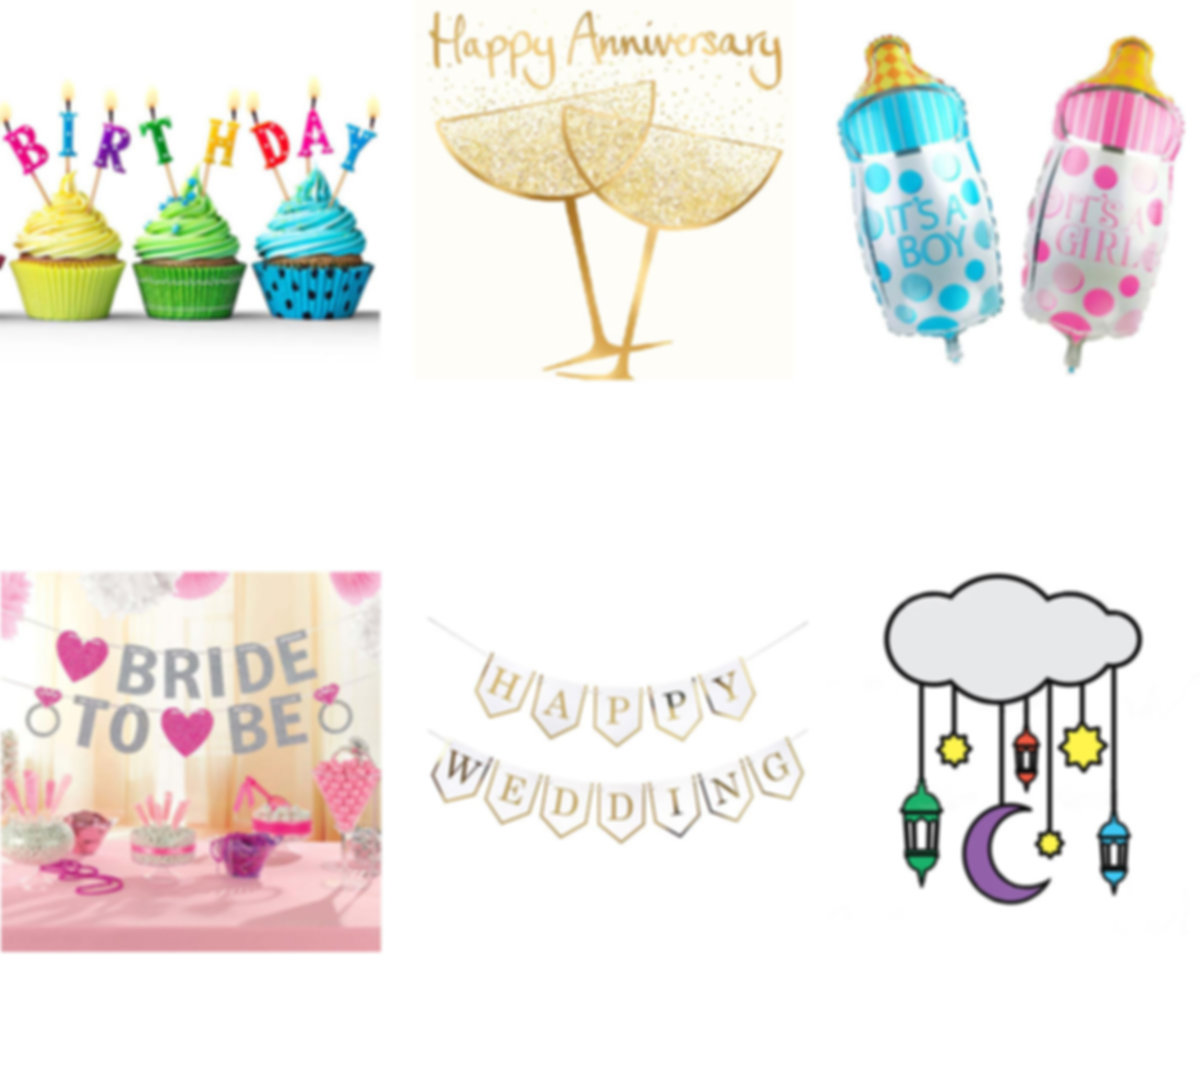 Party Items Supplies by Occasions, Birthday, Anniversary, Bridal , Baby Showers, Wedding